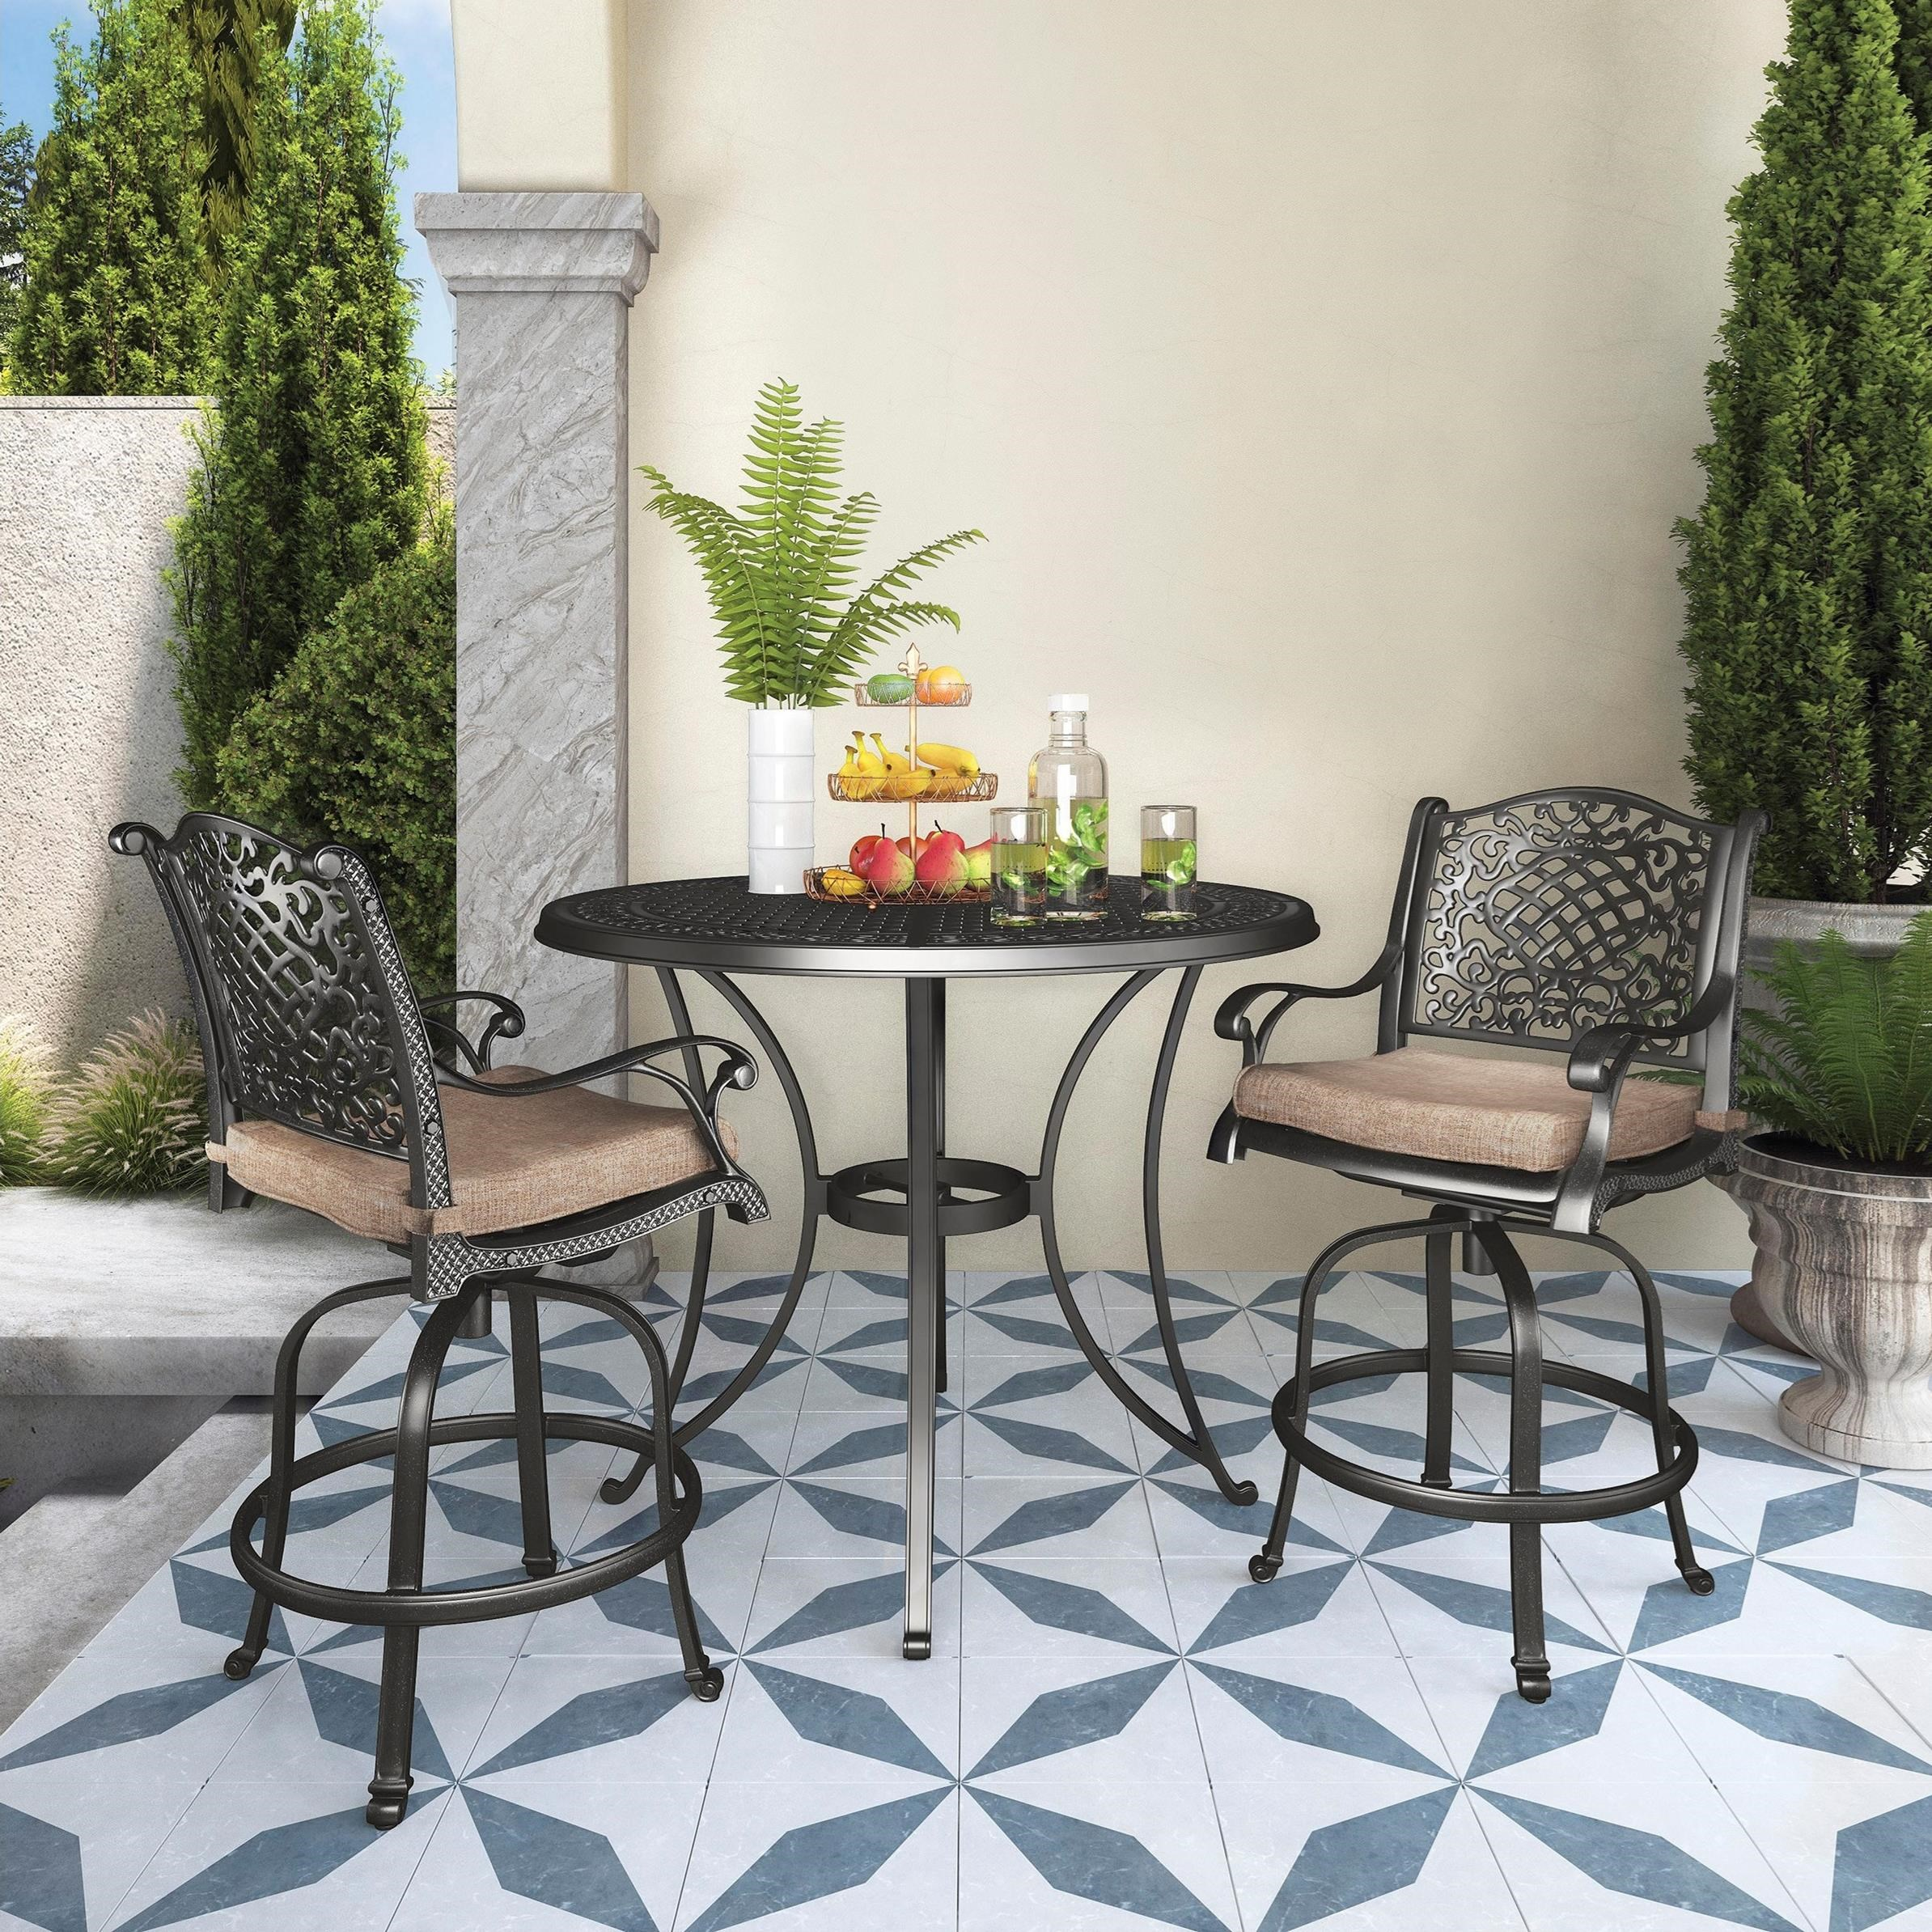 Rose View Outdoor Bistro Set by Signature Design by Ashley at Lapeer Furniture & Mattress Center